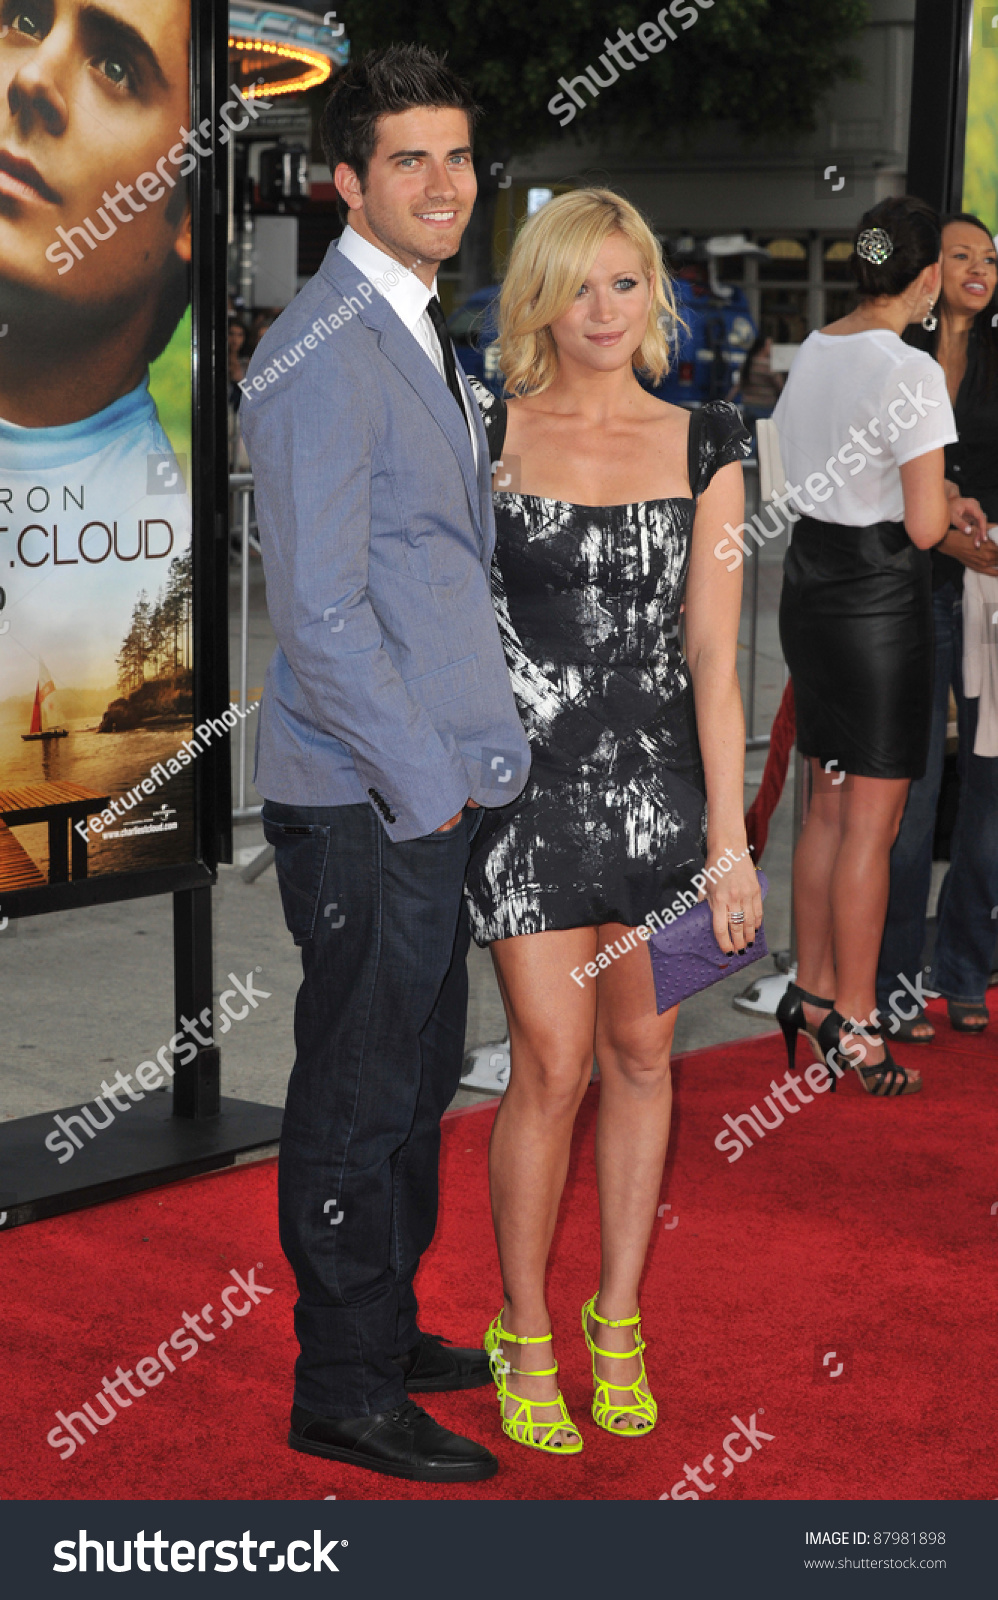 Brittany Snow & Boyfriend At The World Premiere Of ...